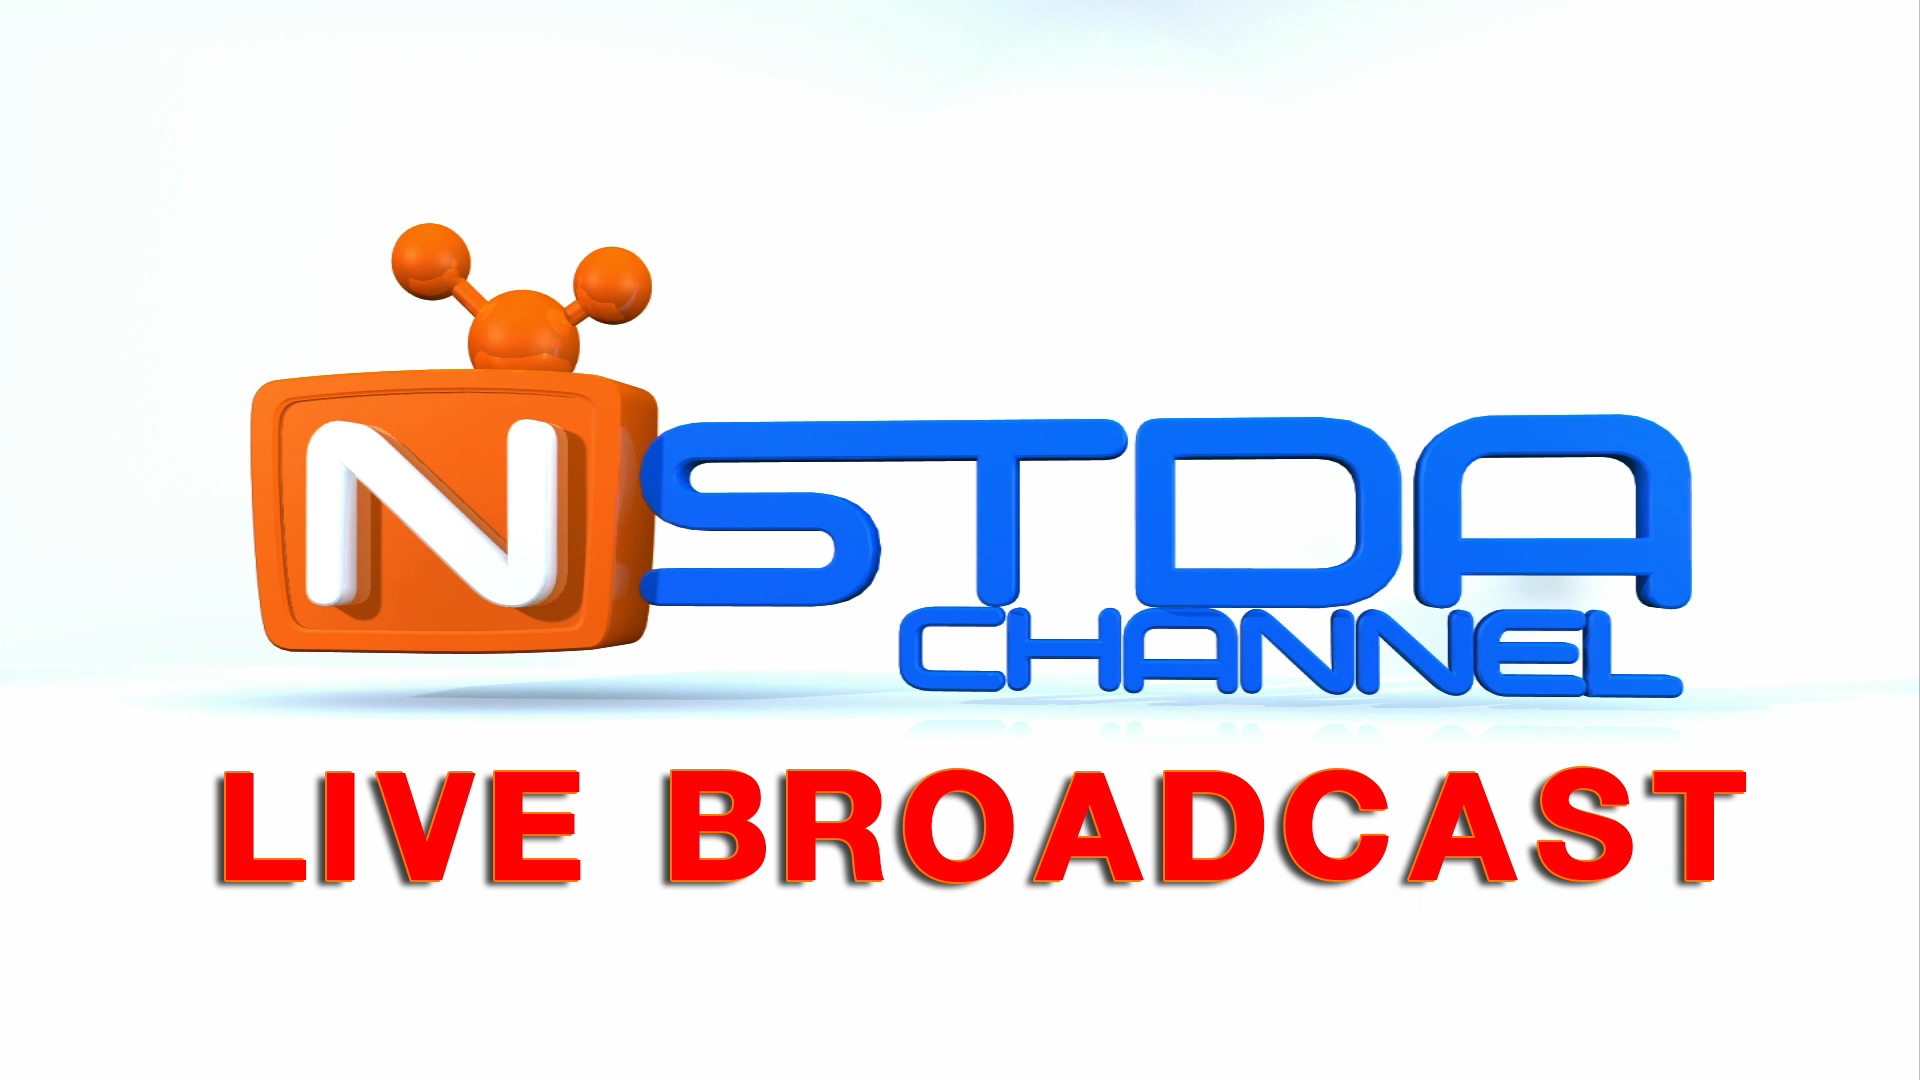 NSTDA Channel Live Broadcasting